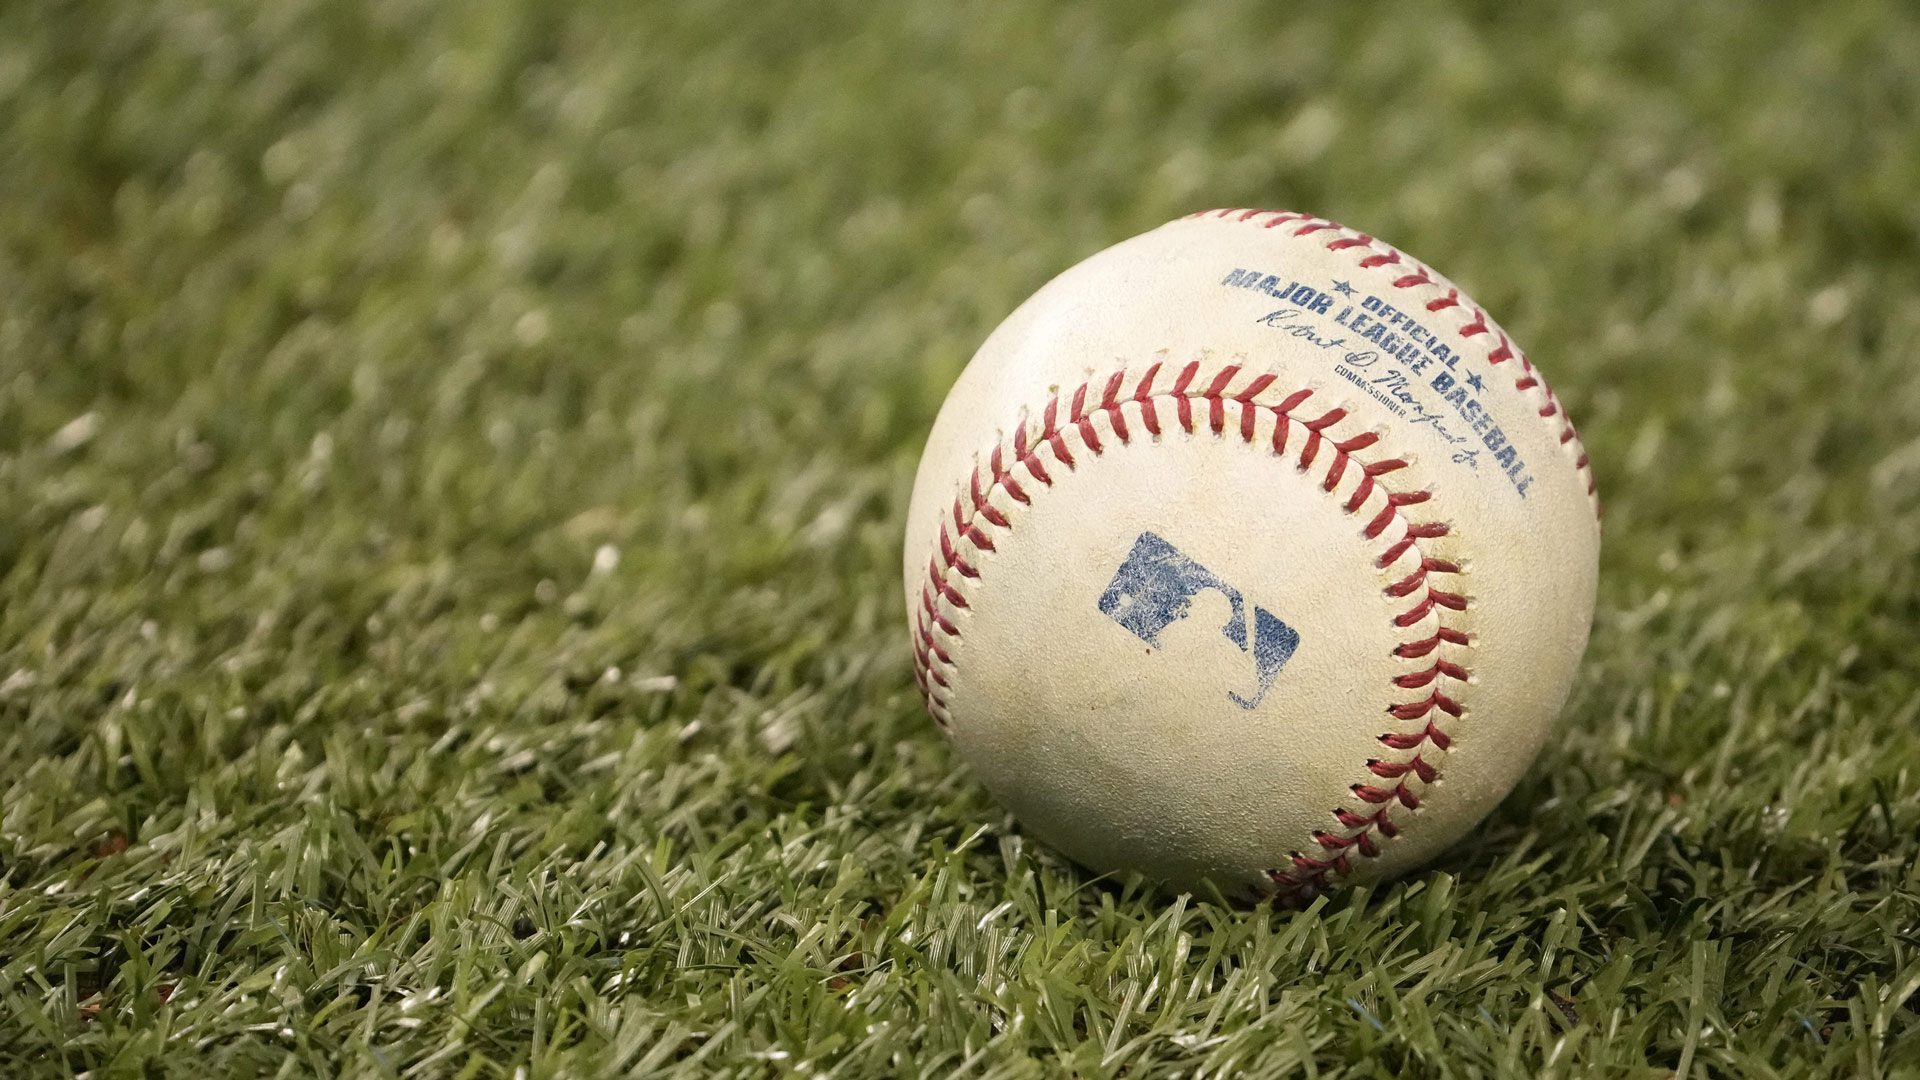 Report: MLB Managers, Coaches Need COVID-19 Vaccine for Field Access in 2021 Playoffs